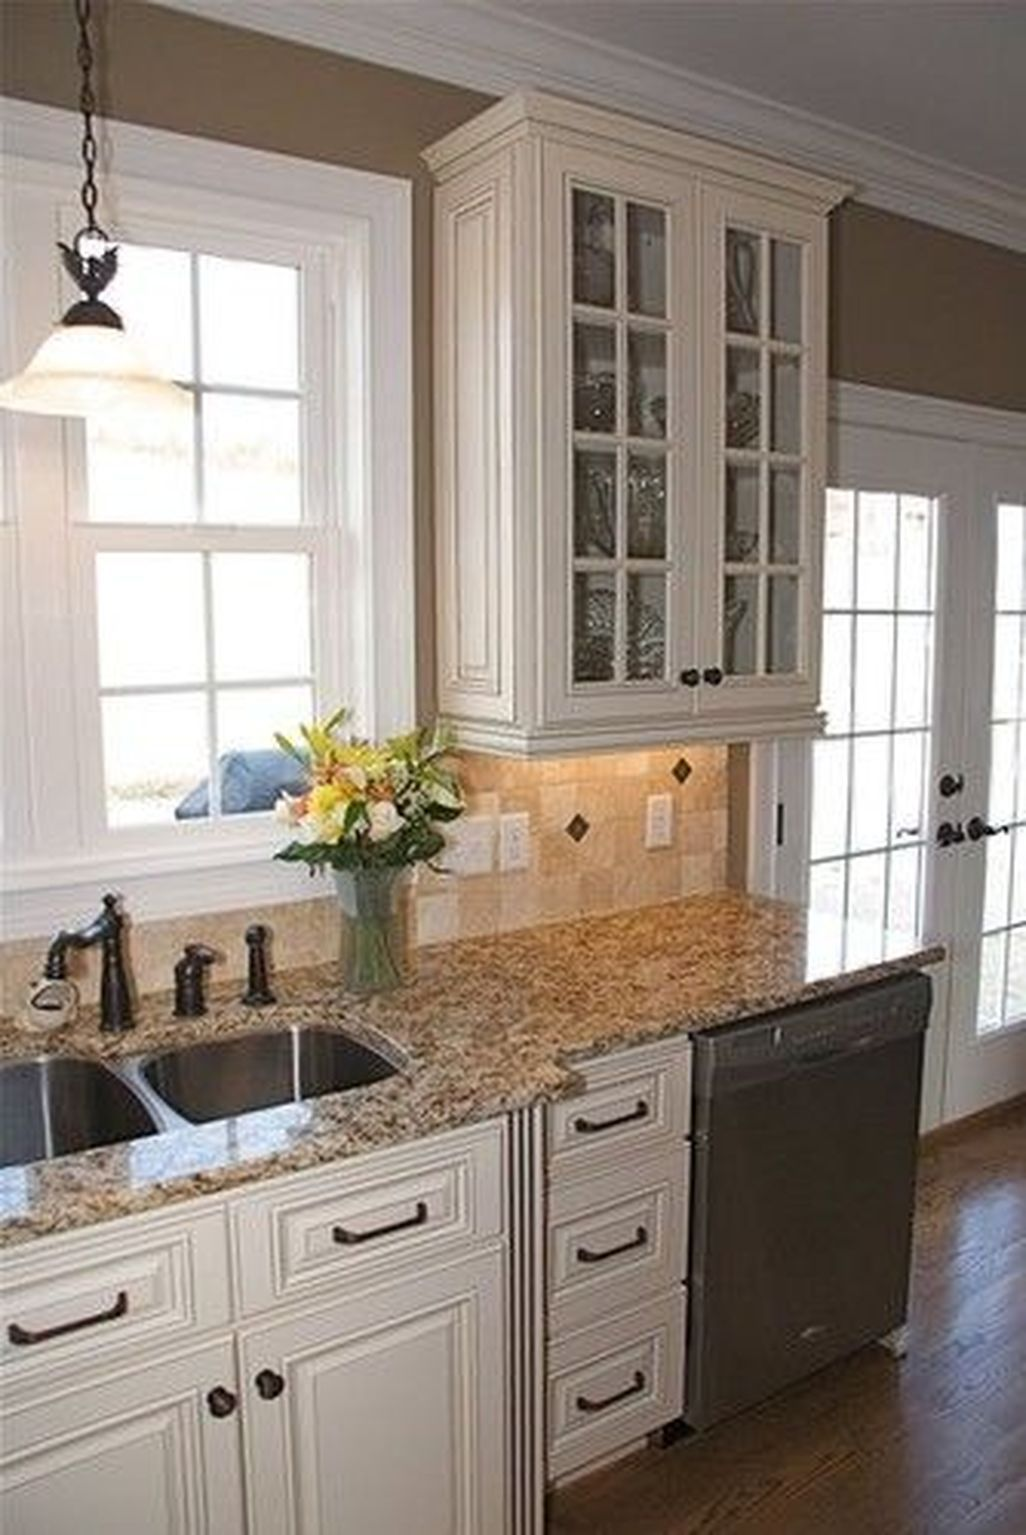 46 Traditional Kitchen Ideas Traditional Kitchen Cabinets Kitchen Renovation New Kitchen Cabinets